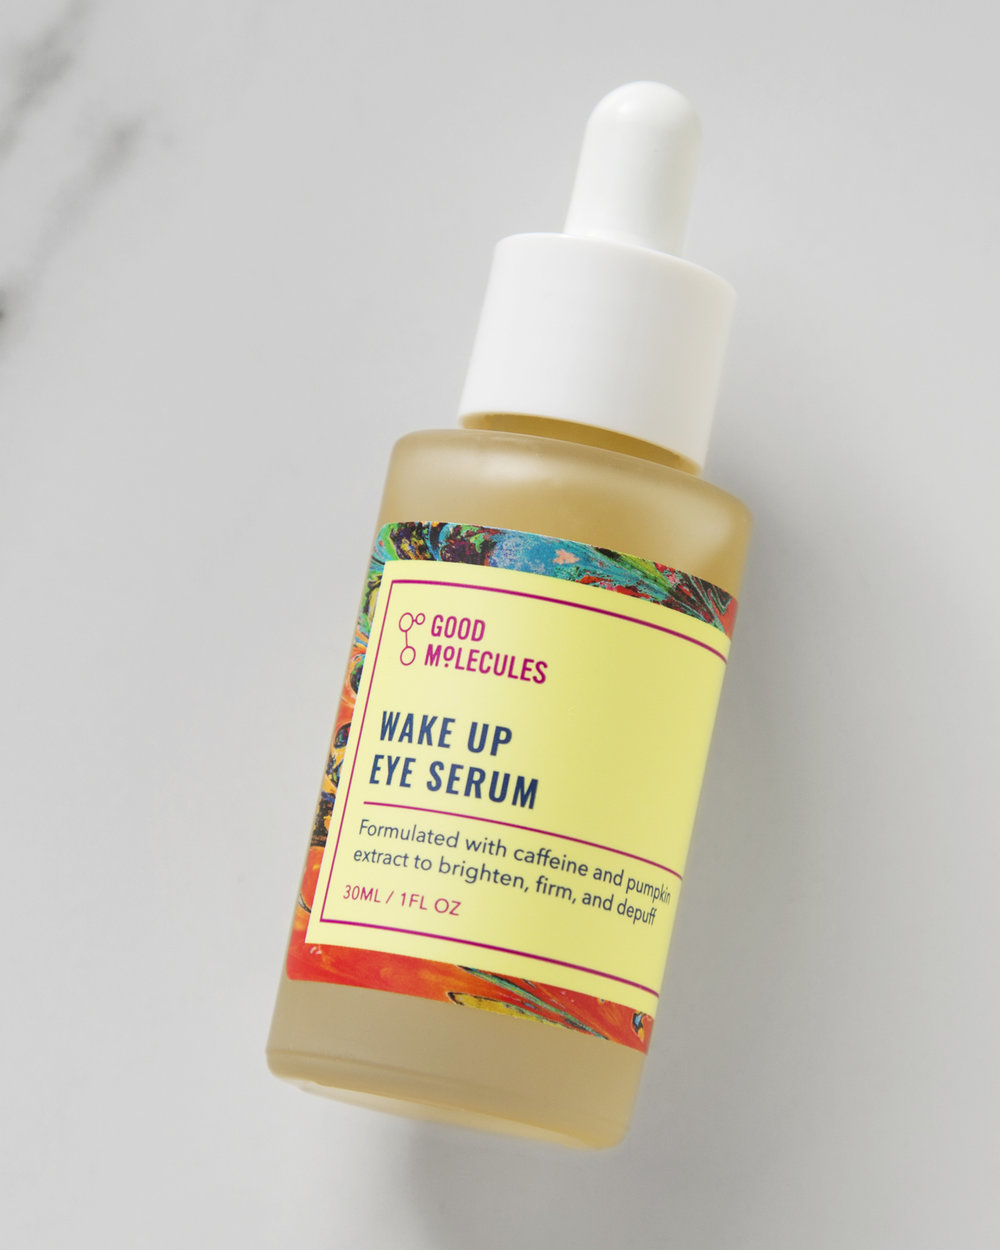 Good Molecules Wake Up Eye Serum